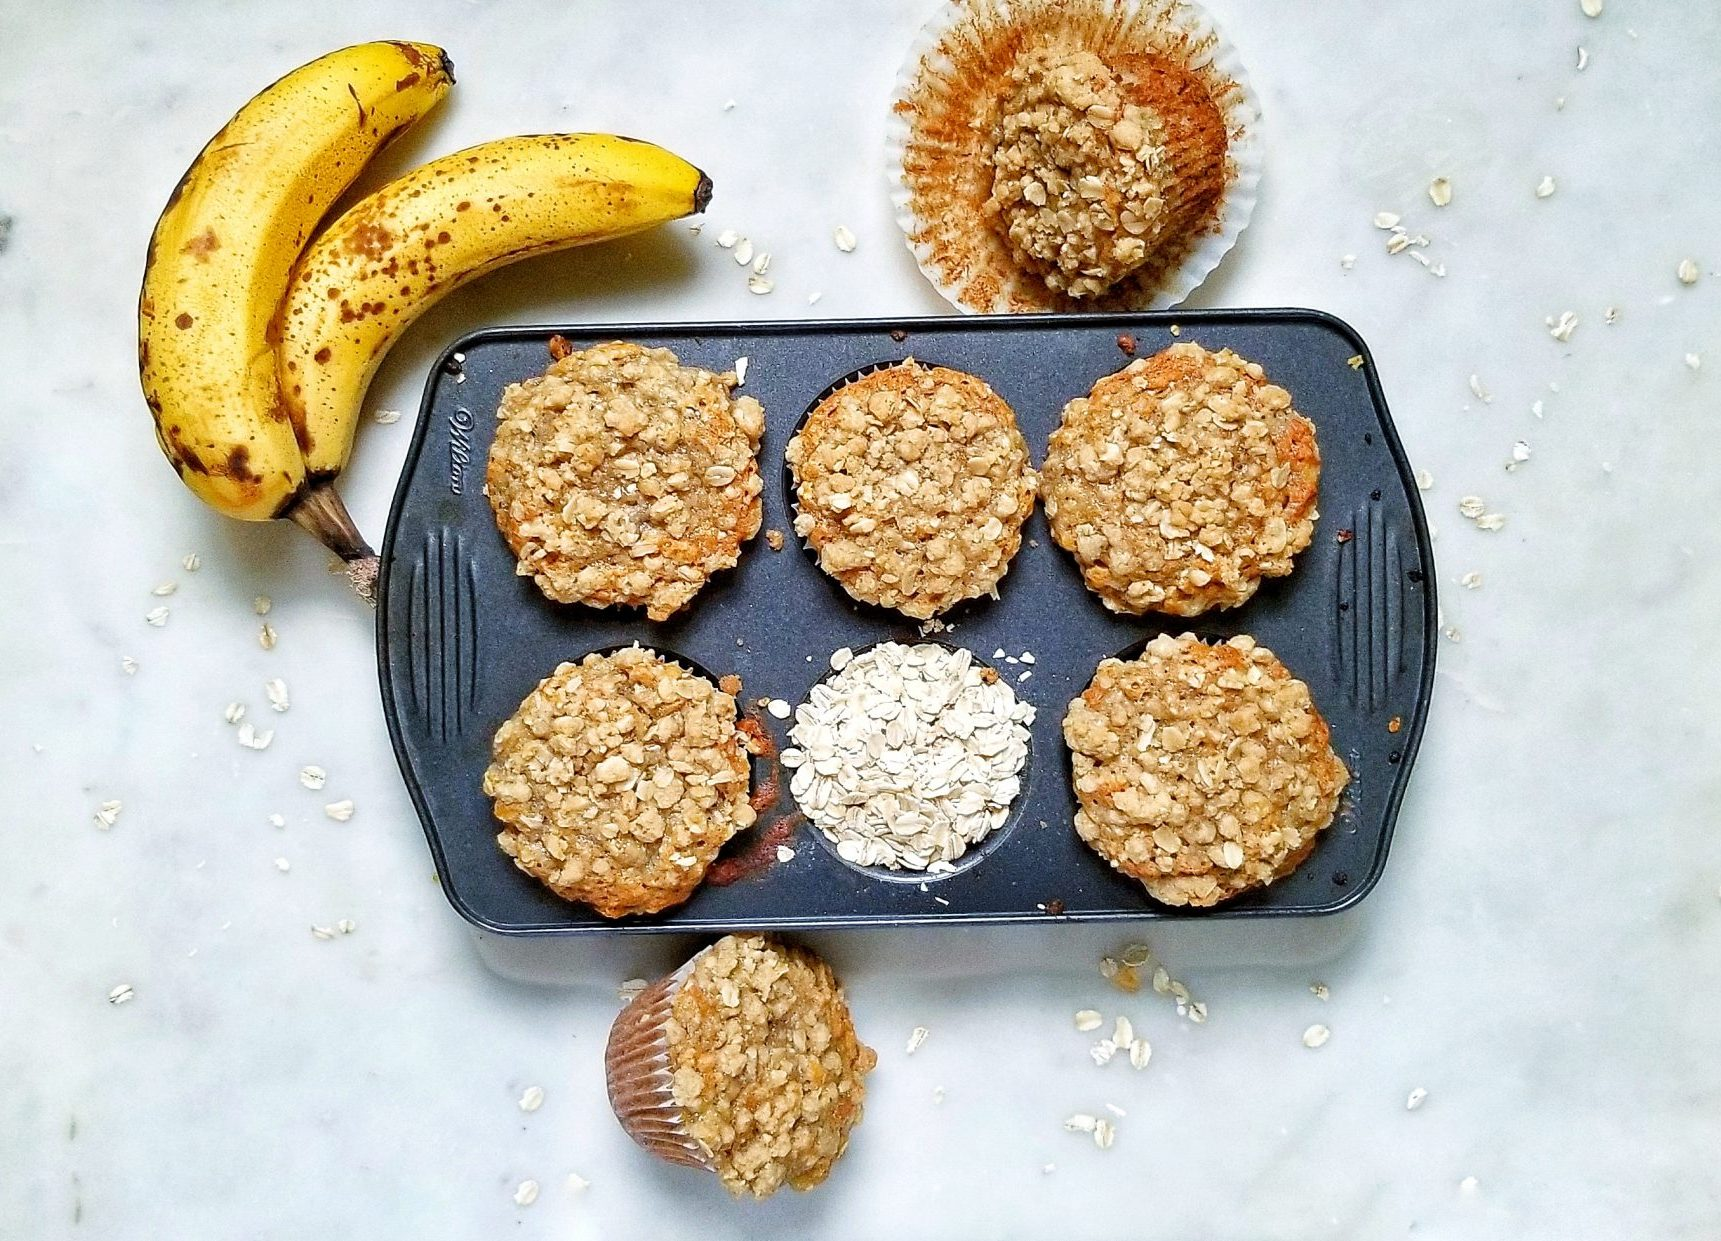 Oatmeal Banana Muffins with Streusel Topping